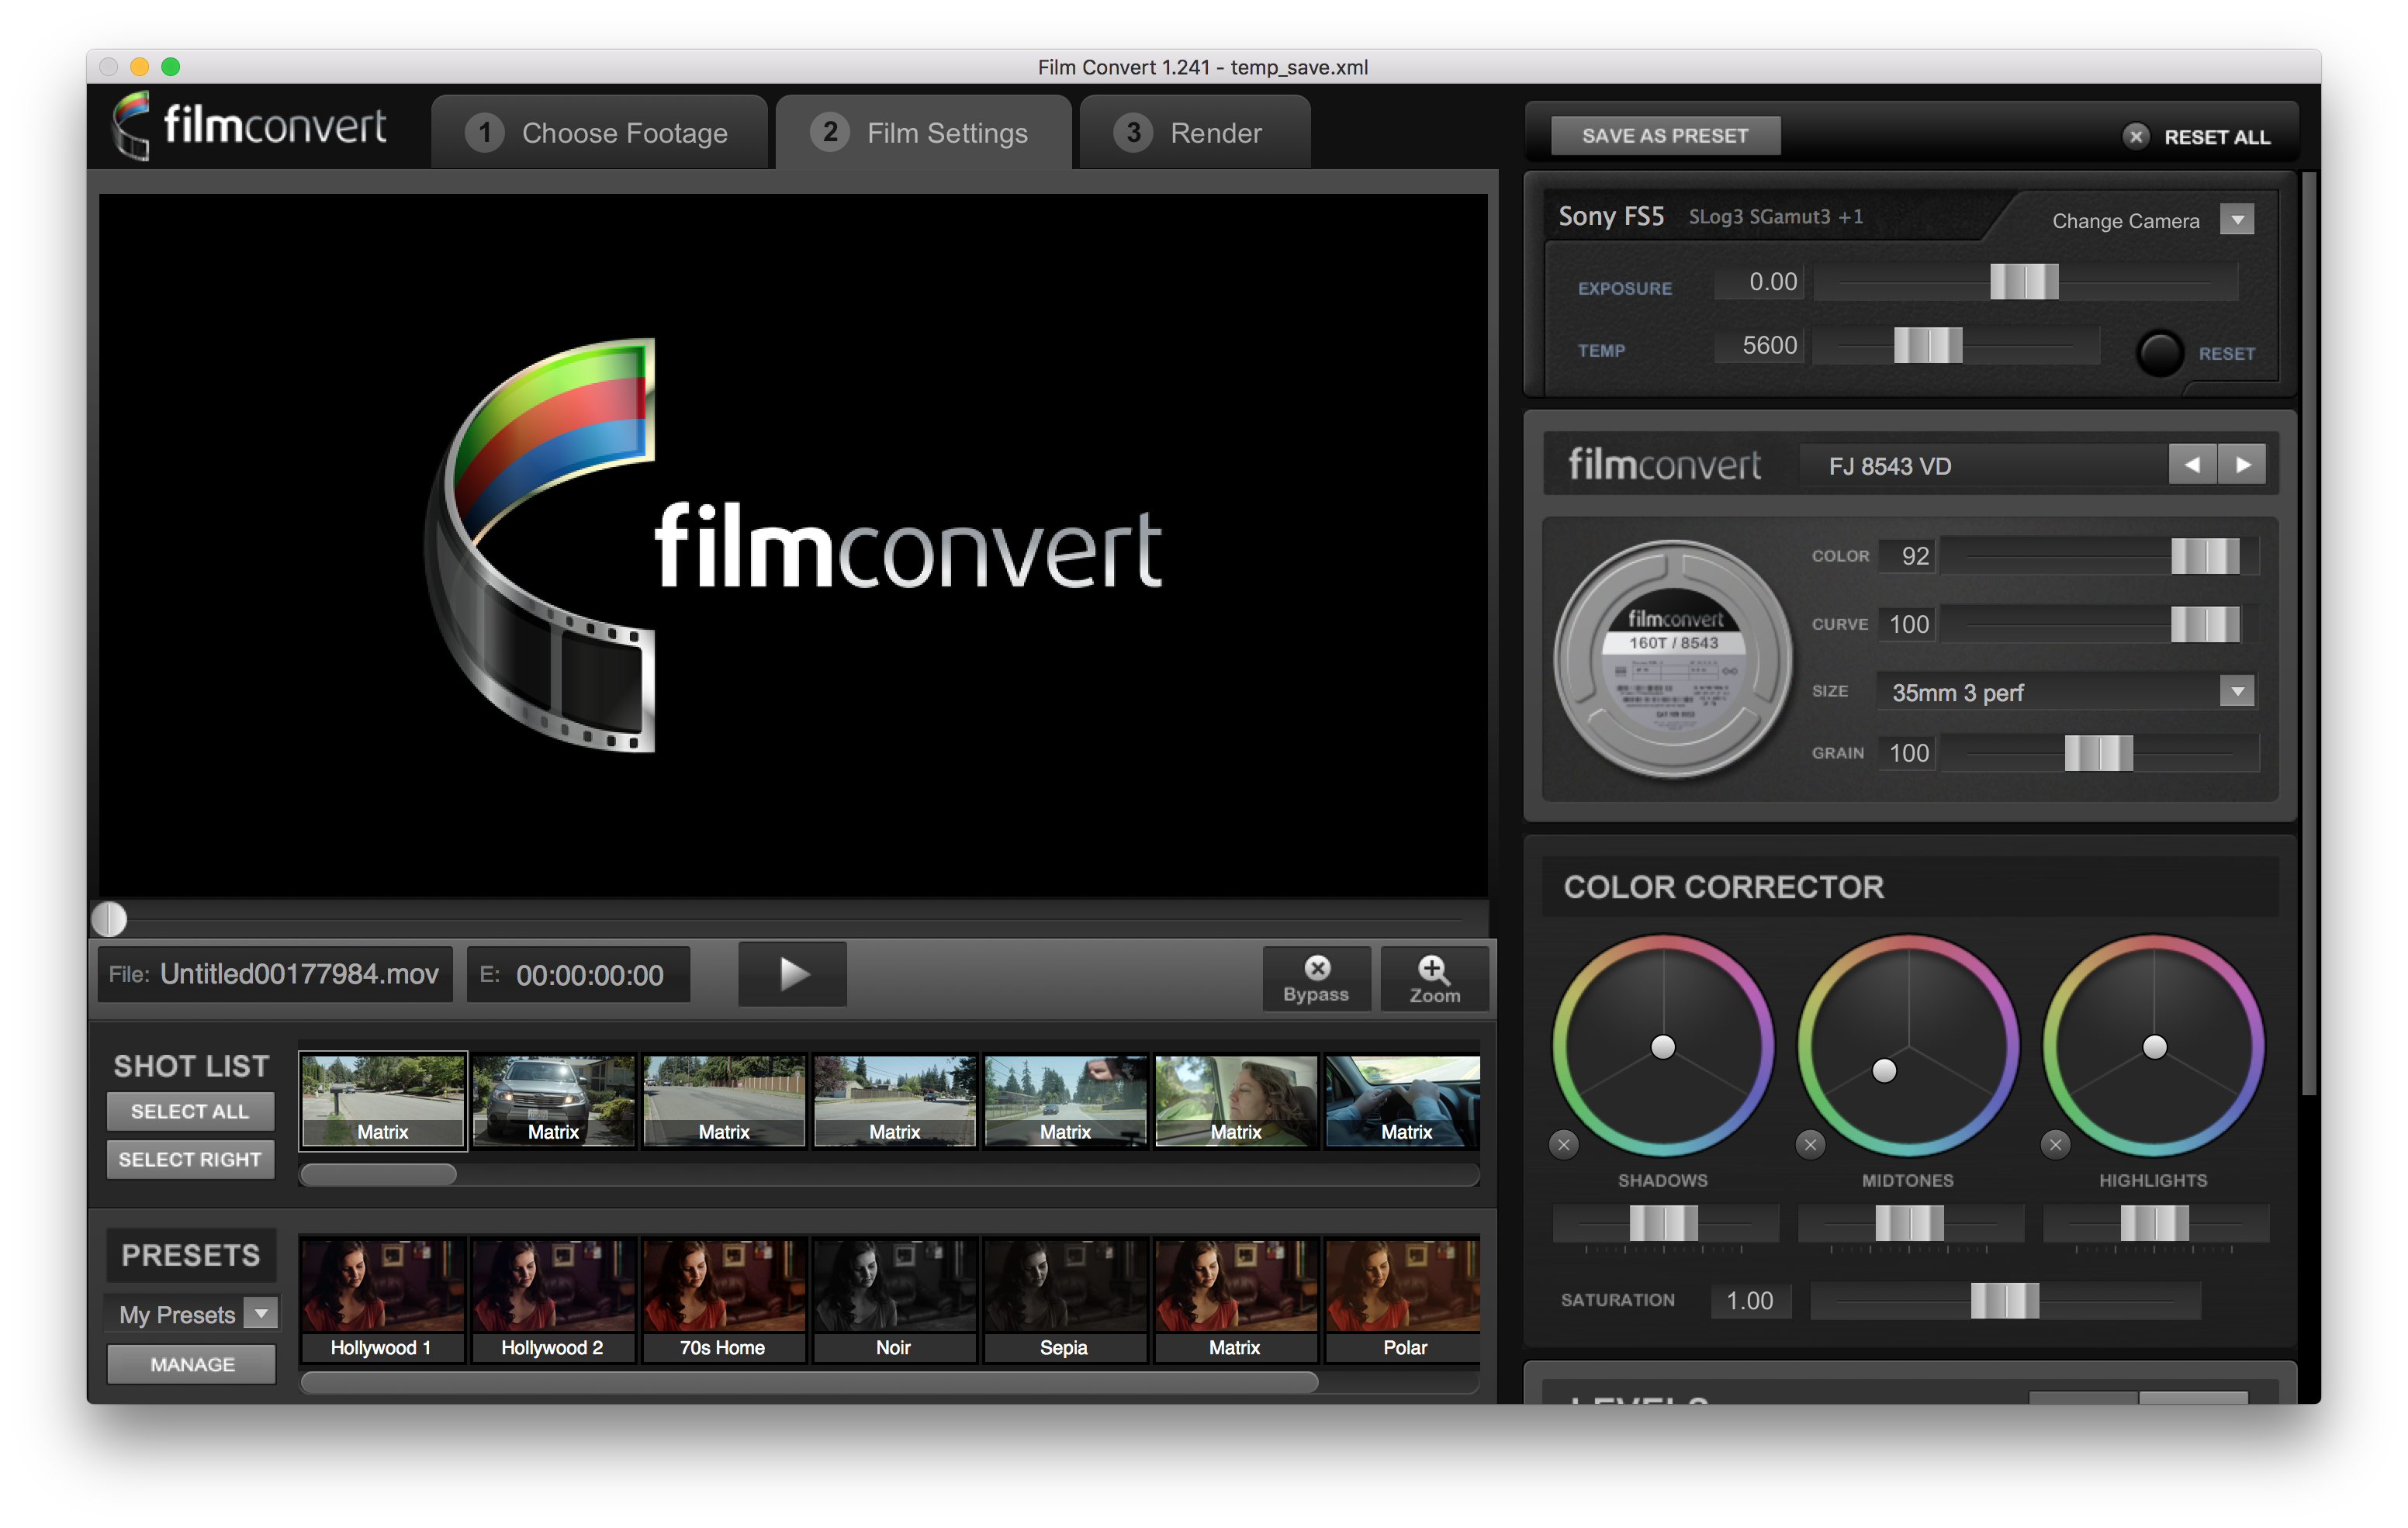 Image result for film convert software logo